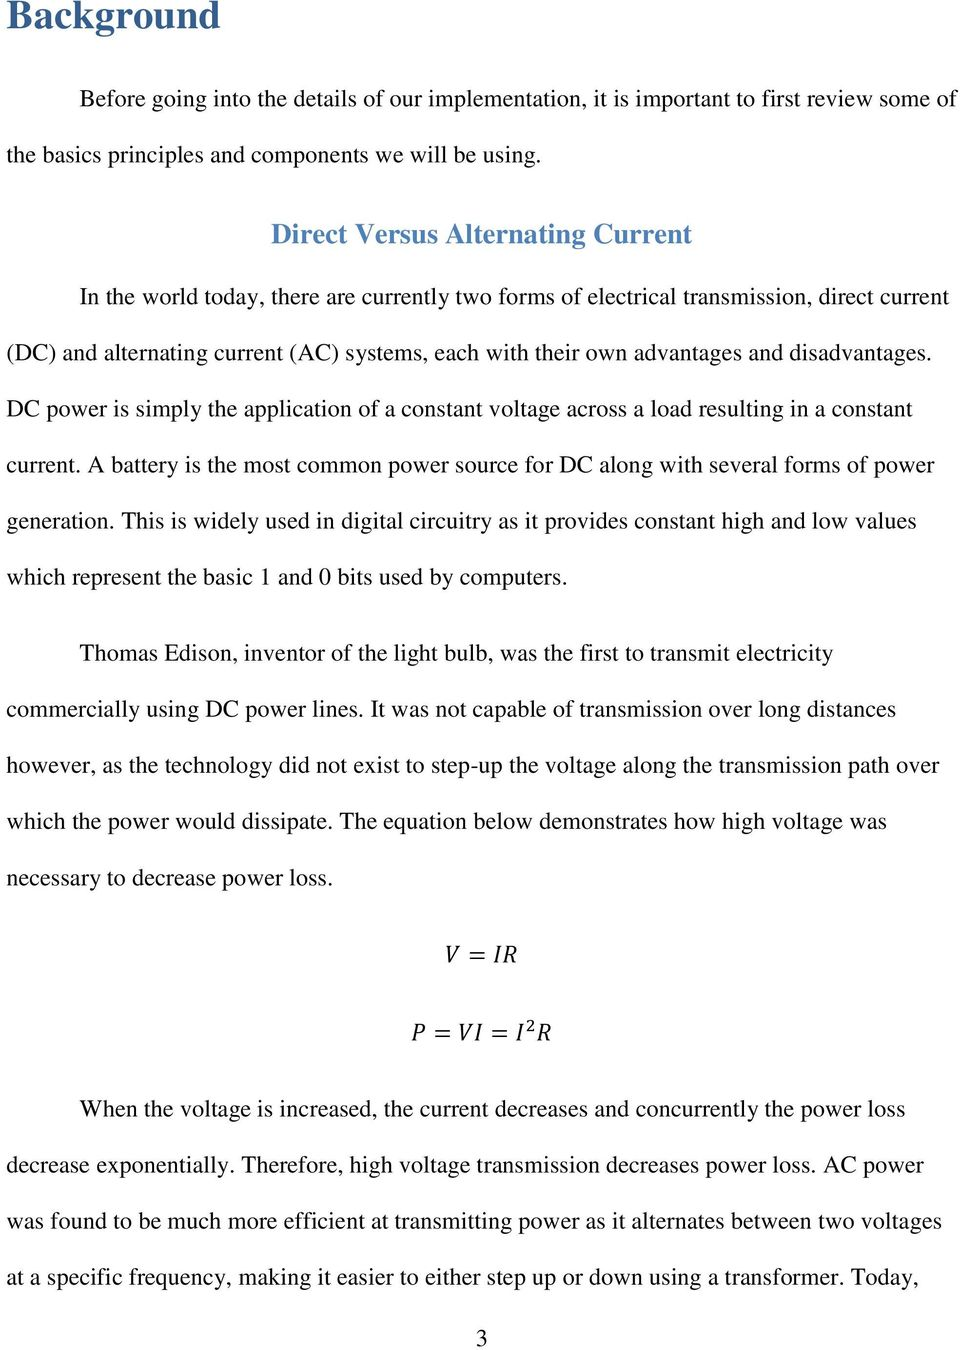 Three Level Pwm Dc Ac Inverter Using A Microcontroller Pdf Circuits Power Supply Forward Transformerless To Advantages And Disadvantages Is Simply The Application Of Constant Voltage Across